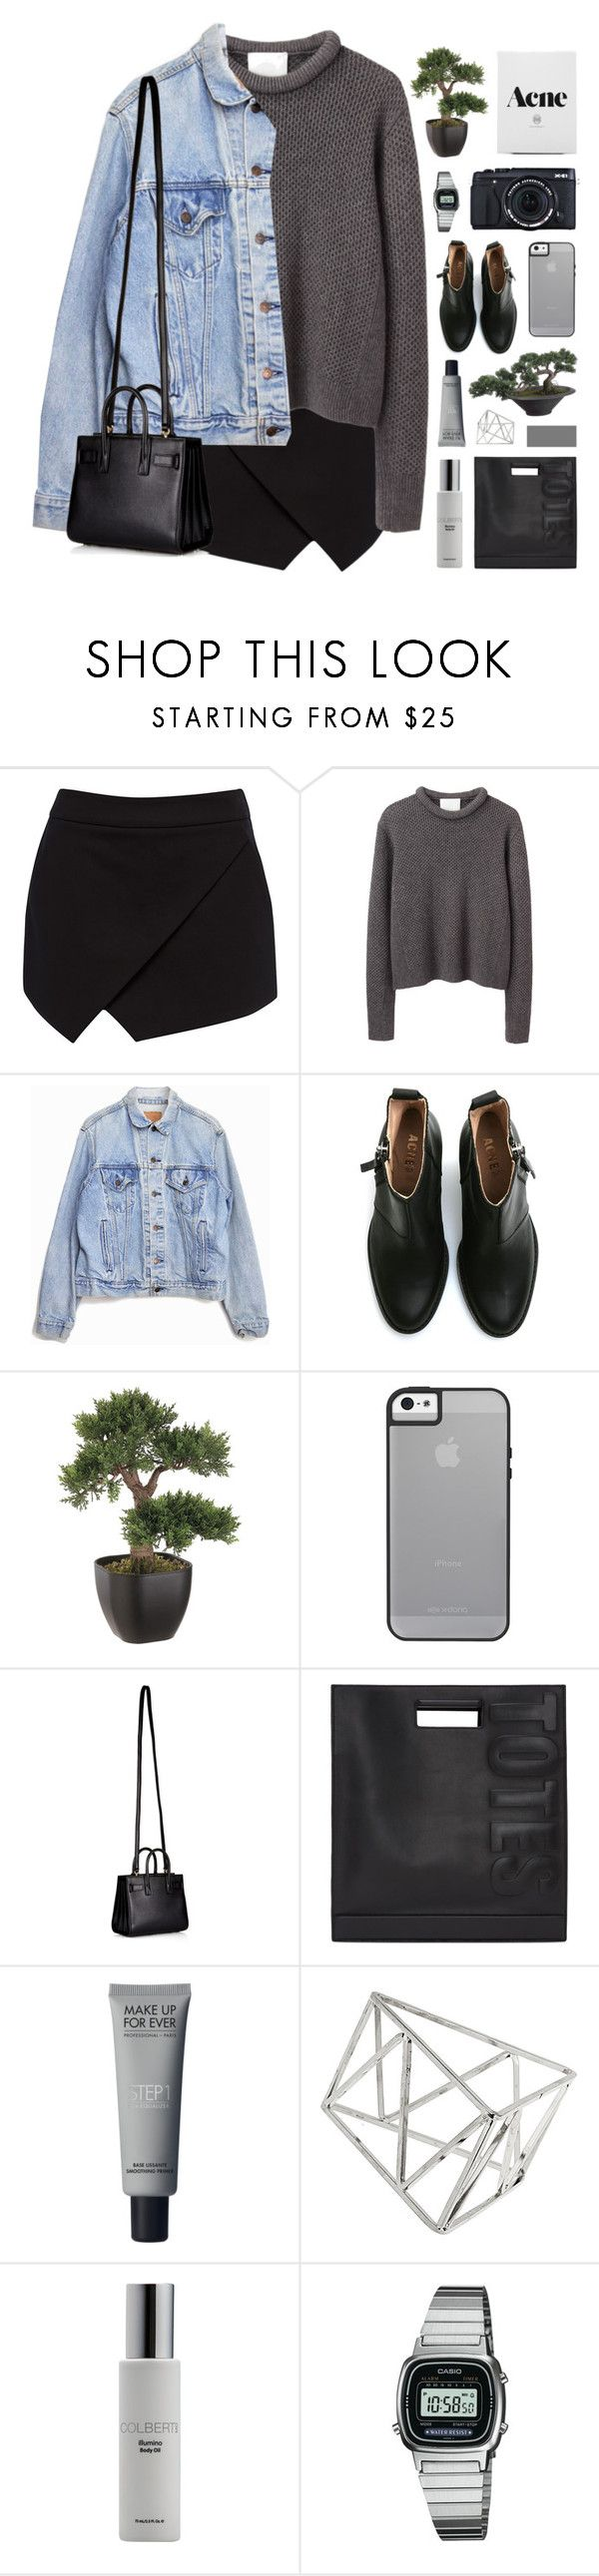 """ROSIE"" by feels-like-snow-in-september ❤ liked on Polyvore featuring Forever New, 3.1 Phillip Lim, Levi's, Acne Studios, Fujifilm, Yves Saint Laurent, Topshop, Colbert MD, Casio and philosoqhytags"